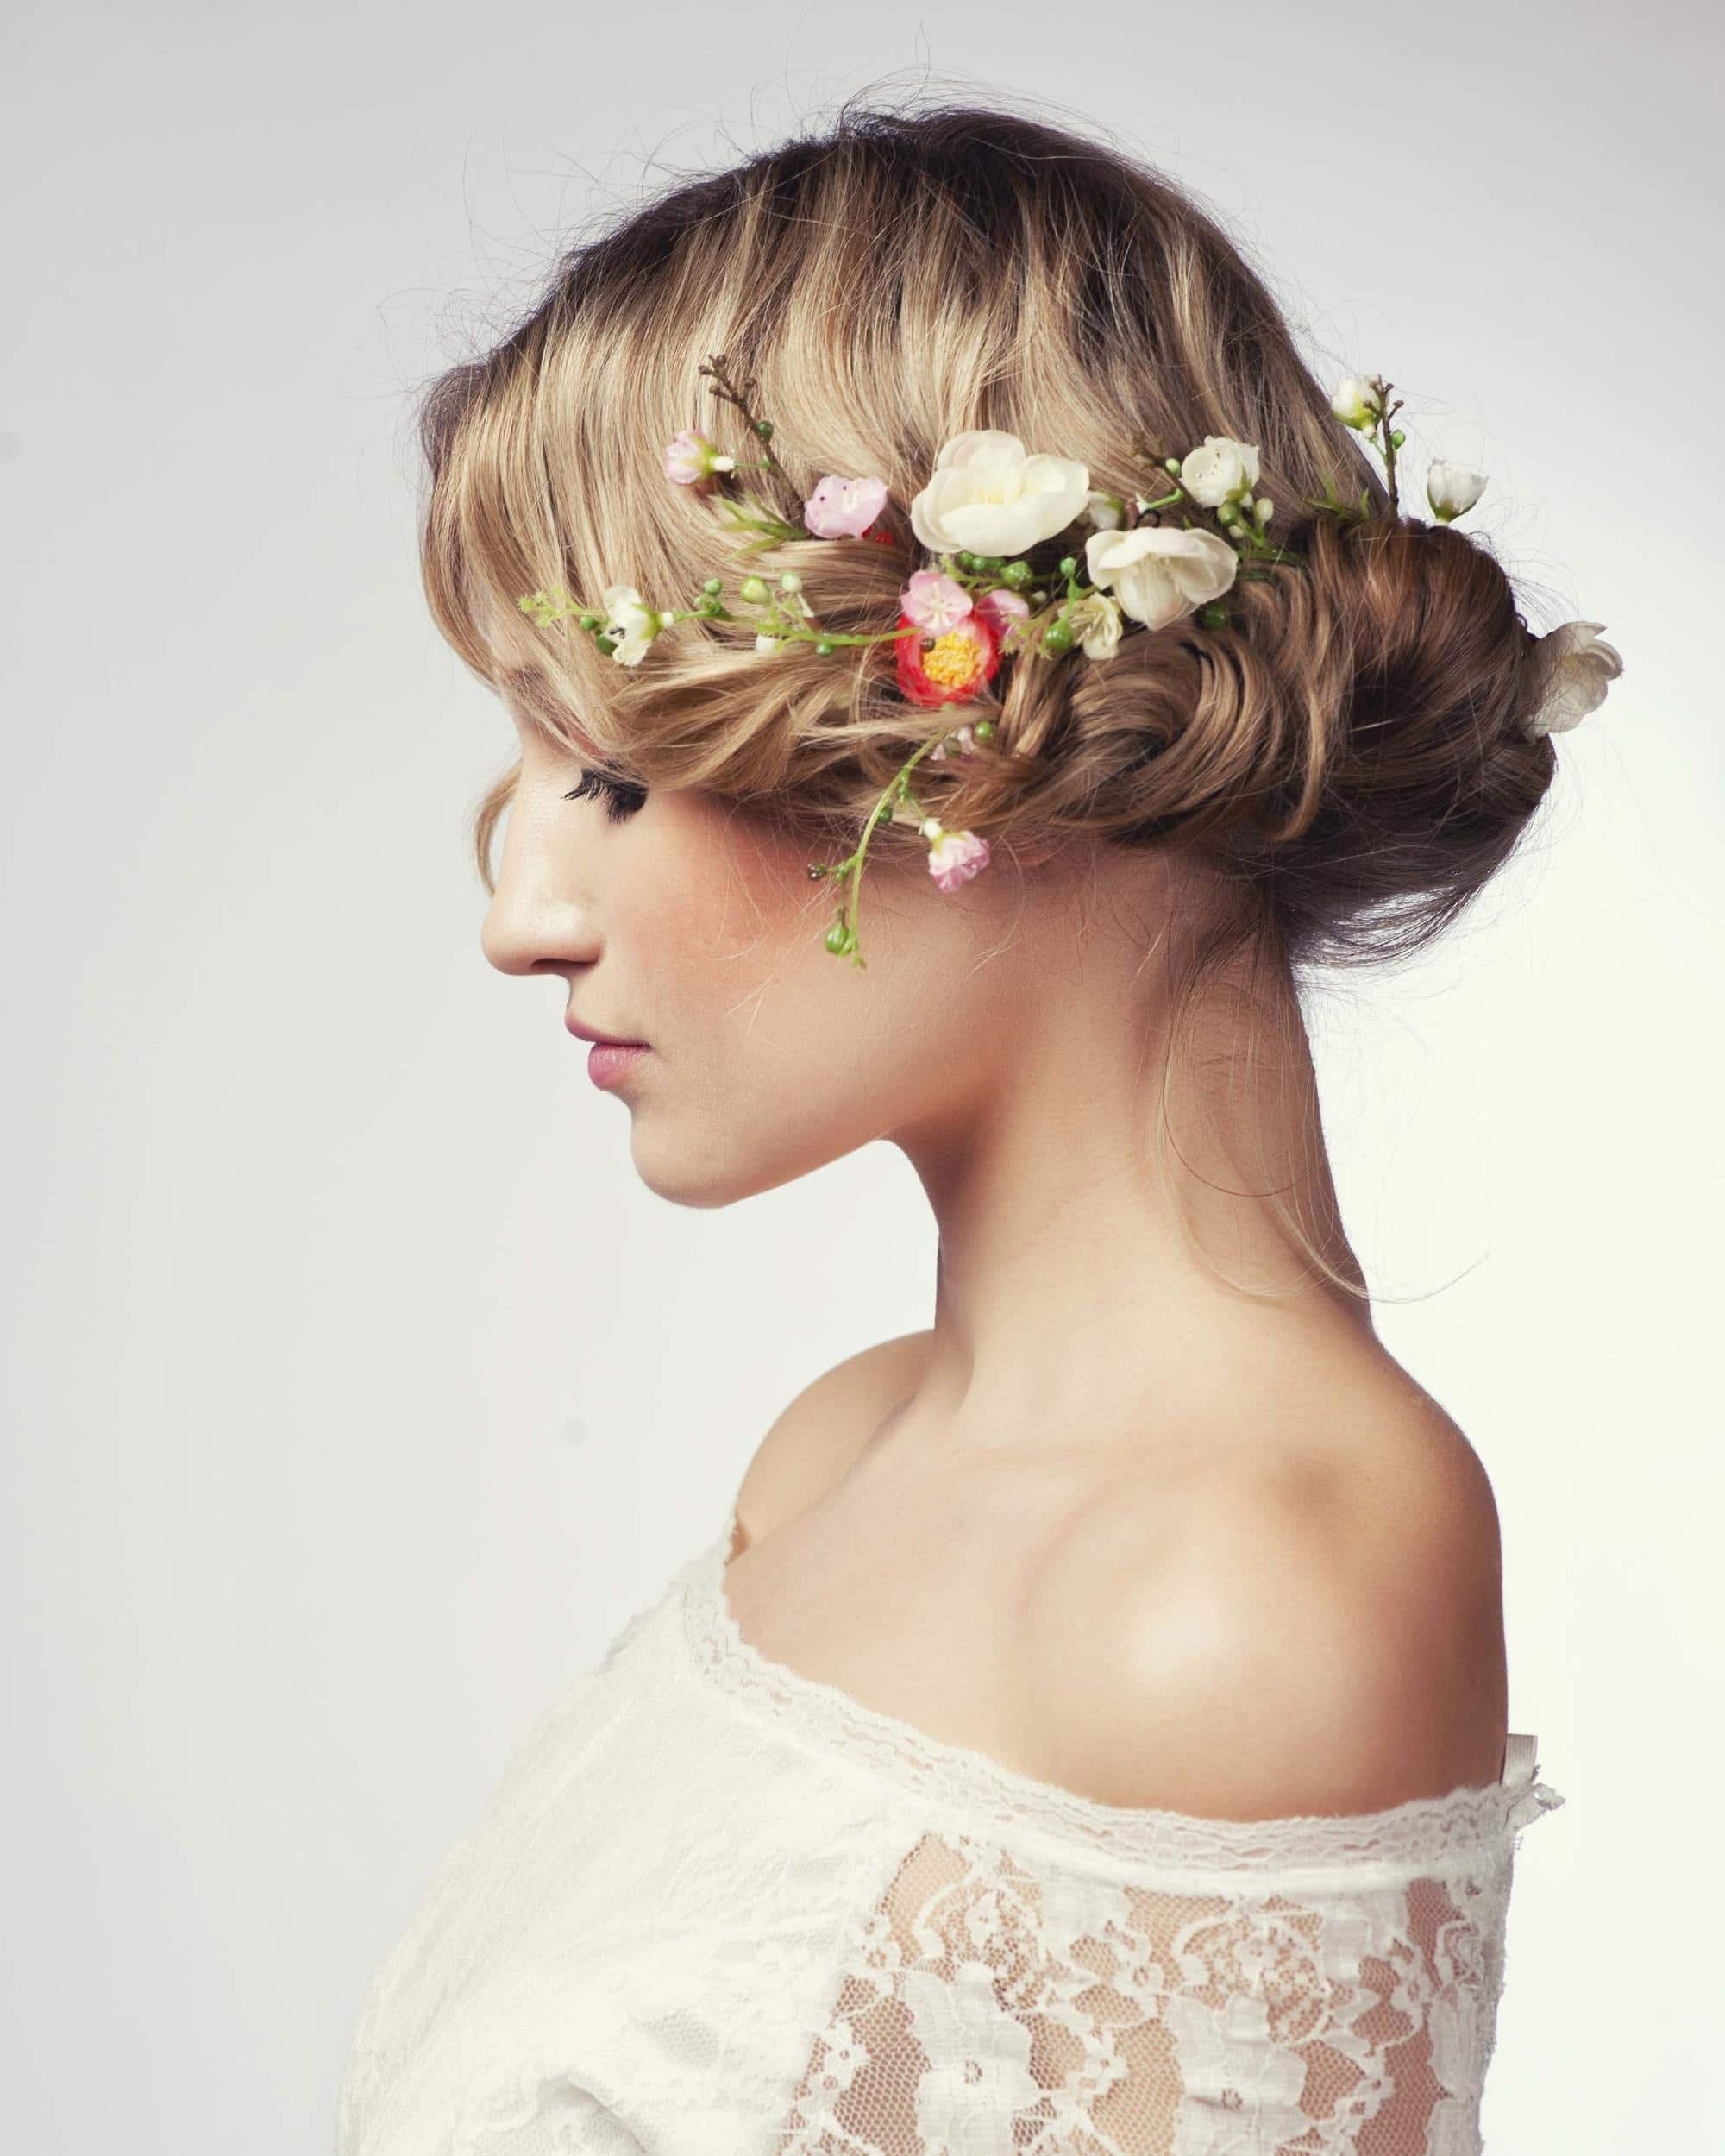 Bridal Hairstyles And Hair Ideas To Inspire Your Look On Your Wedding - Croissant hairstyle bun